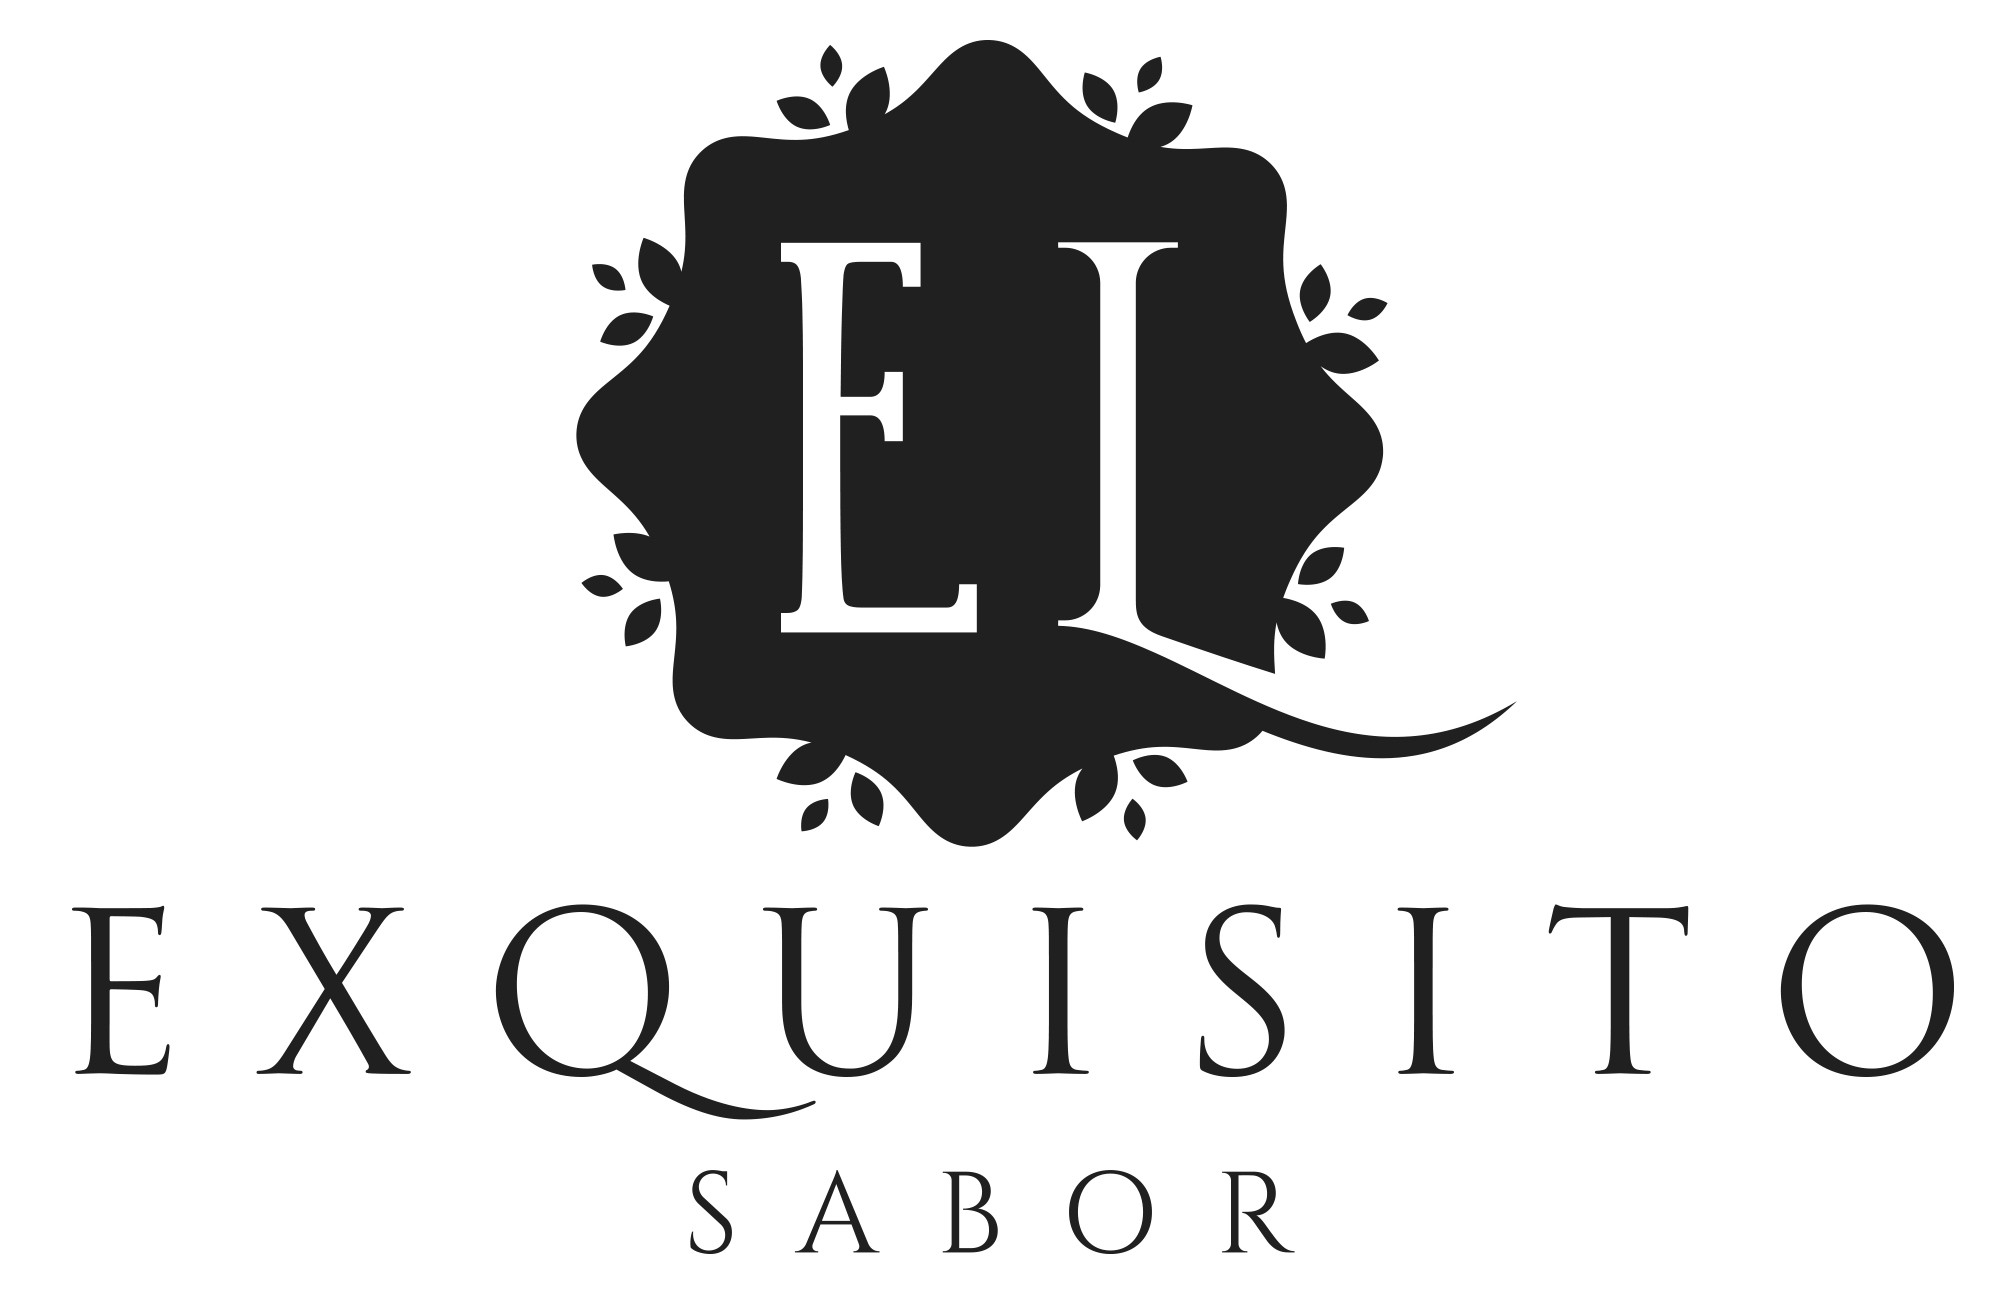 Logo for famous Florida wholesale bakery looking for new image - El Exquisito Sabor